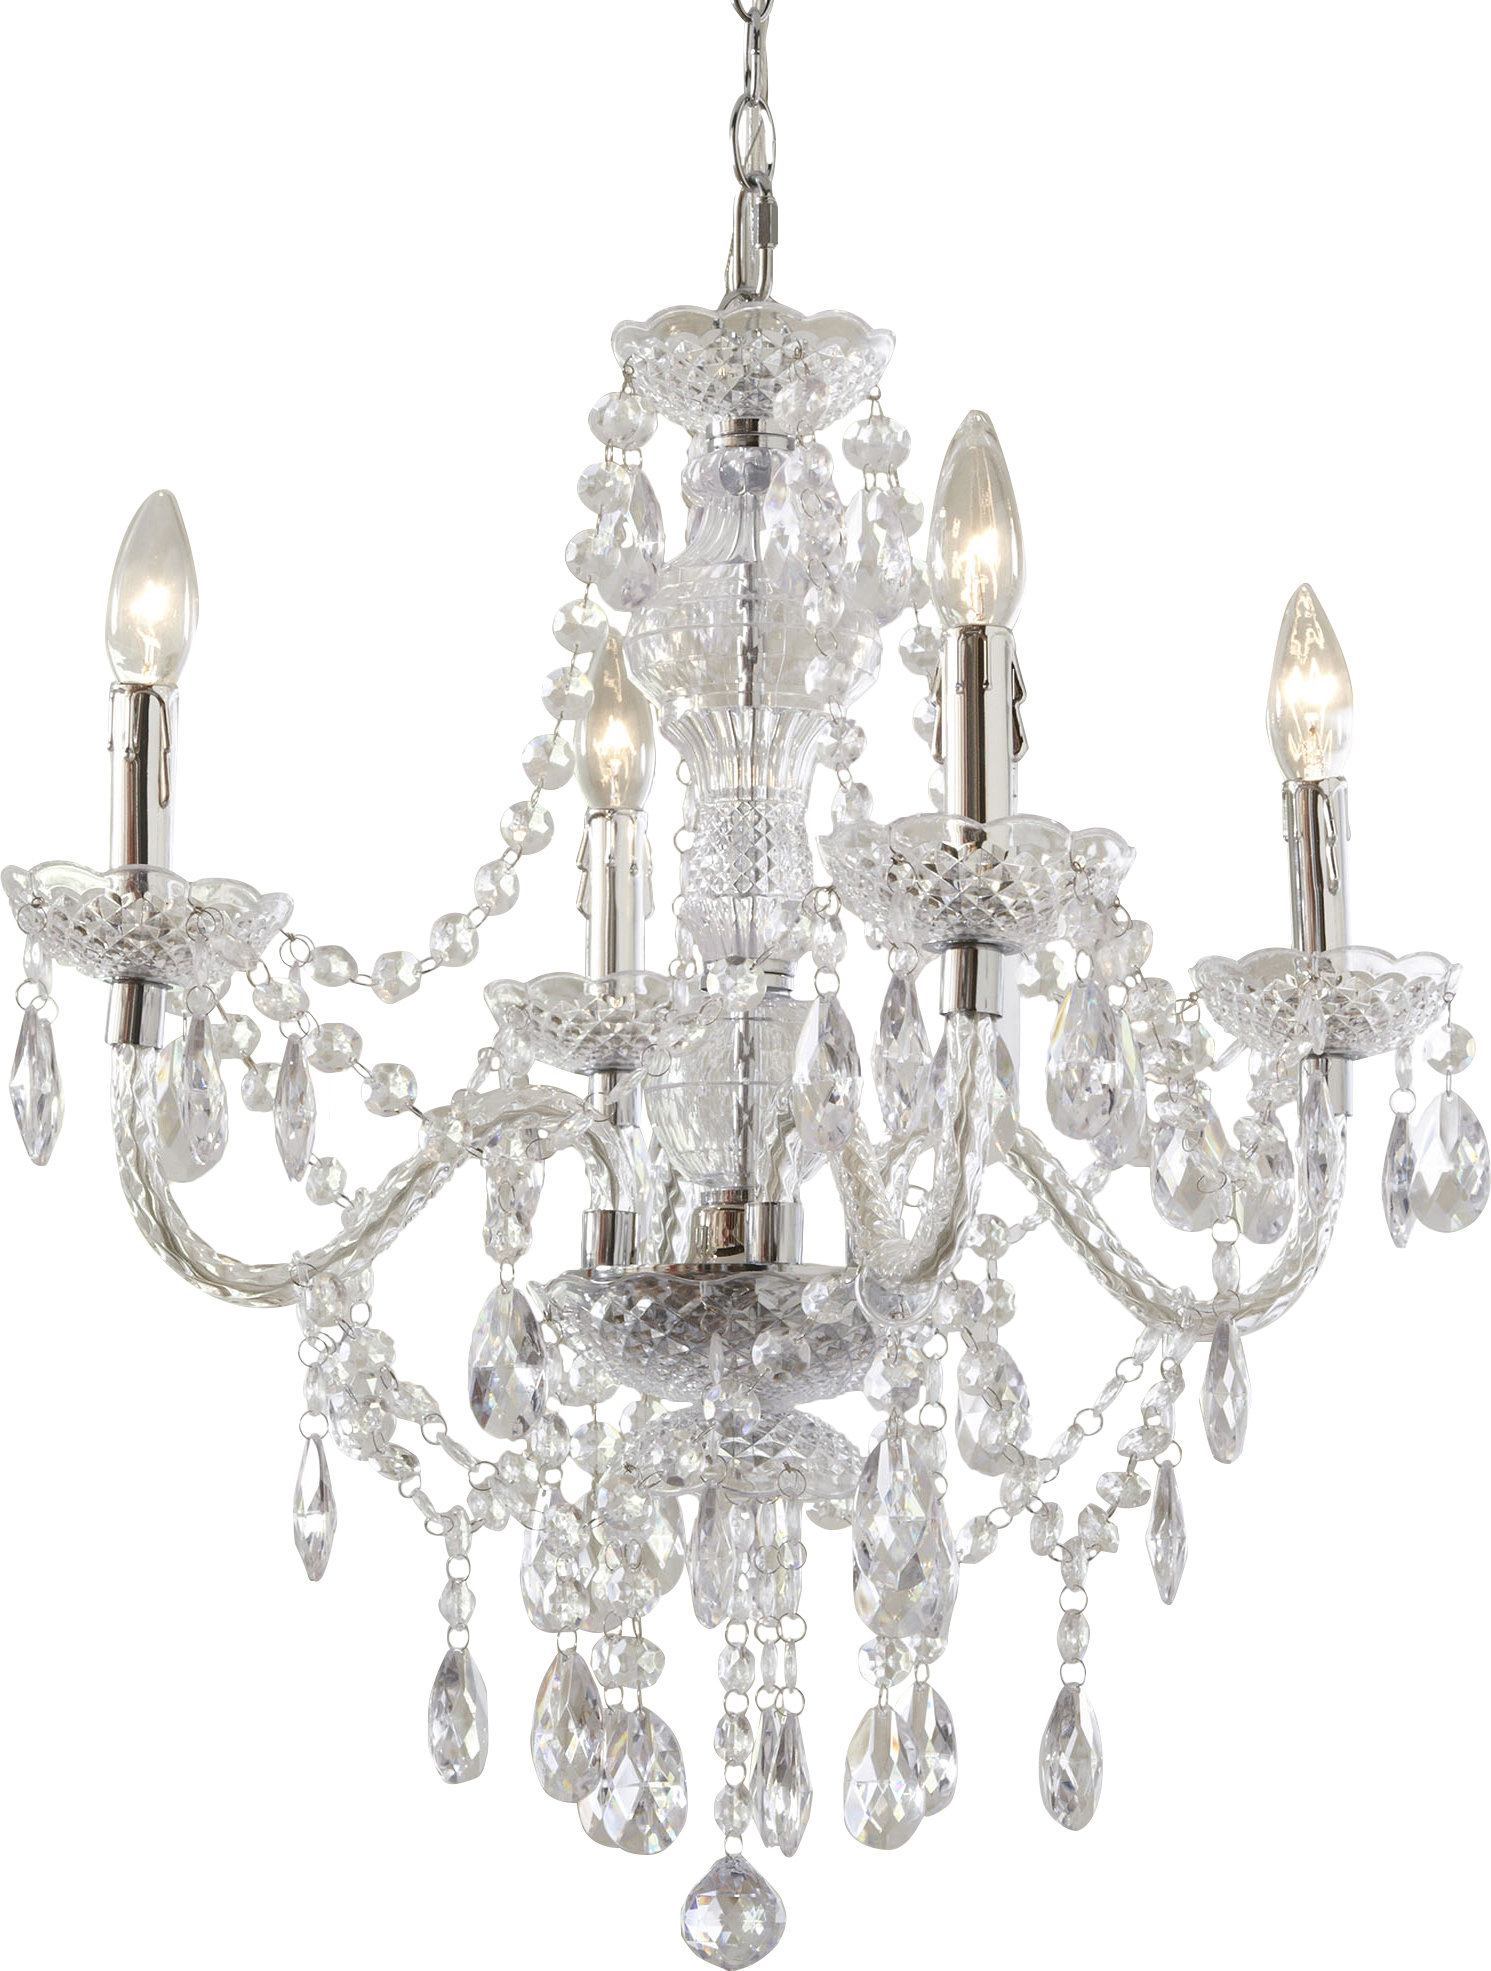 Ice Palace 4 Light Crystal Chandelier Pertaining To Aldora 4 Light Candle Style Chandeliers (View 11 of 30)